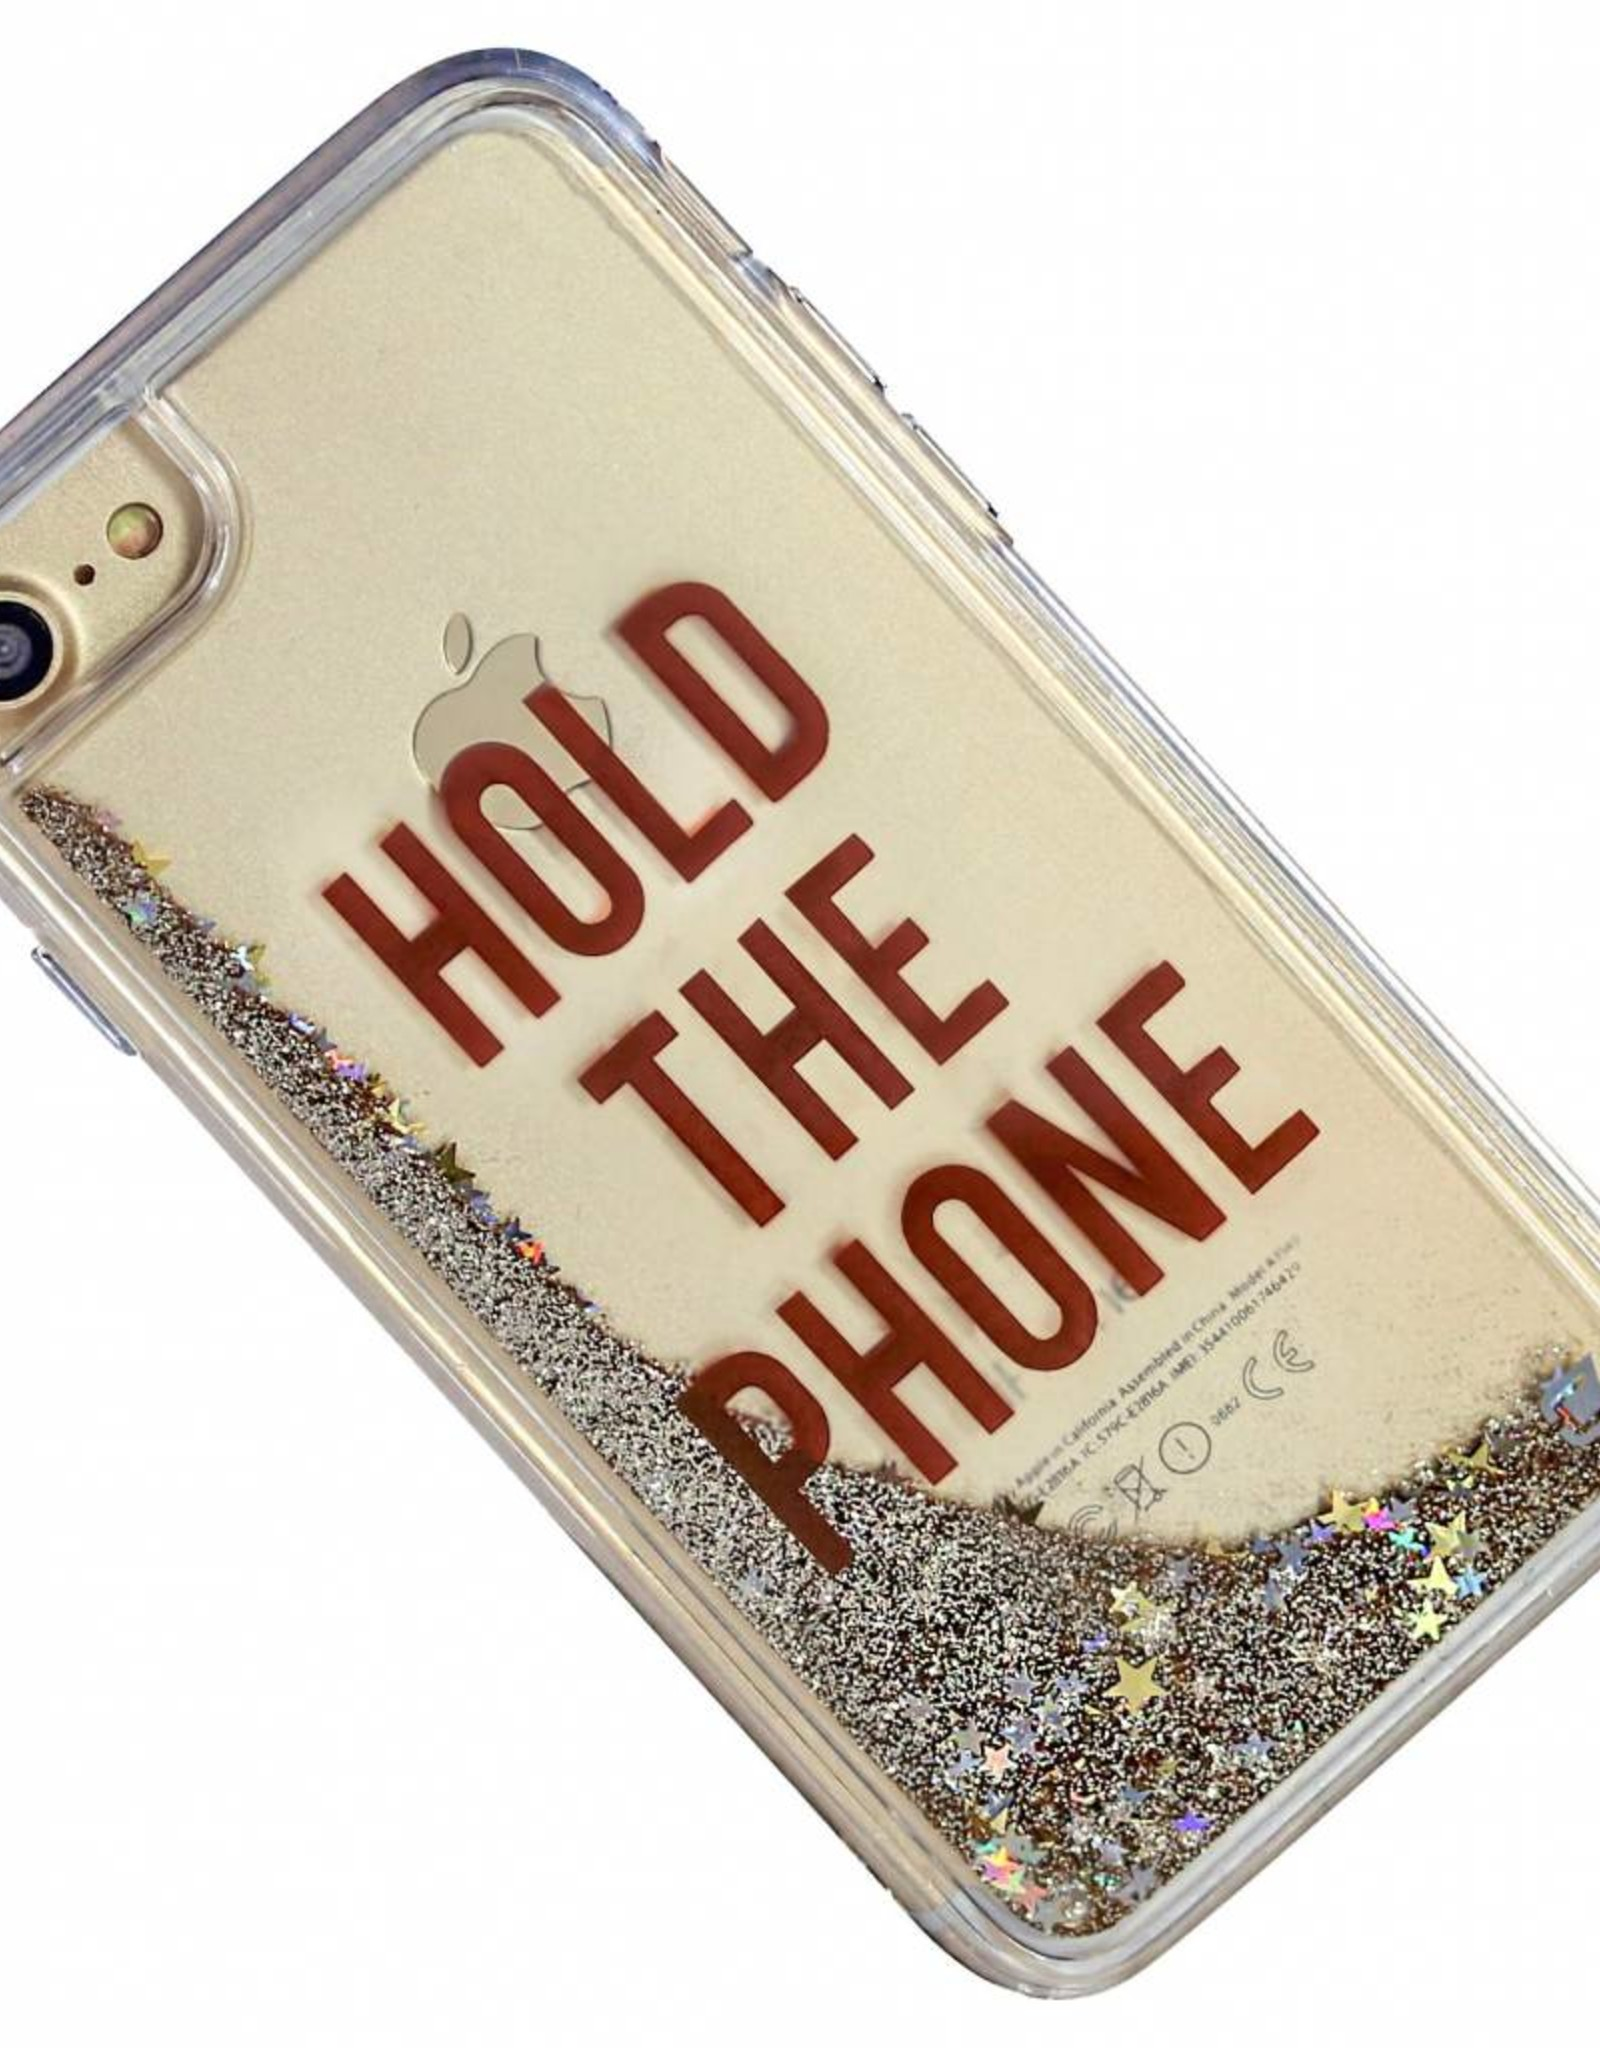 Caseco Caseco| iPhone 8/7/6/6s Liquid Glitter Case ''HOLD THE PHONE'' | WXLG-iP7-HLD